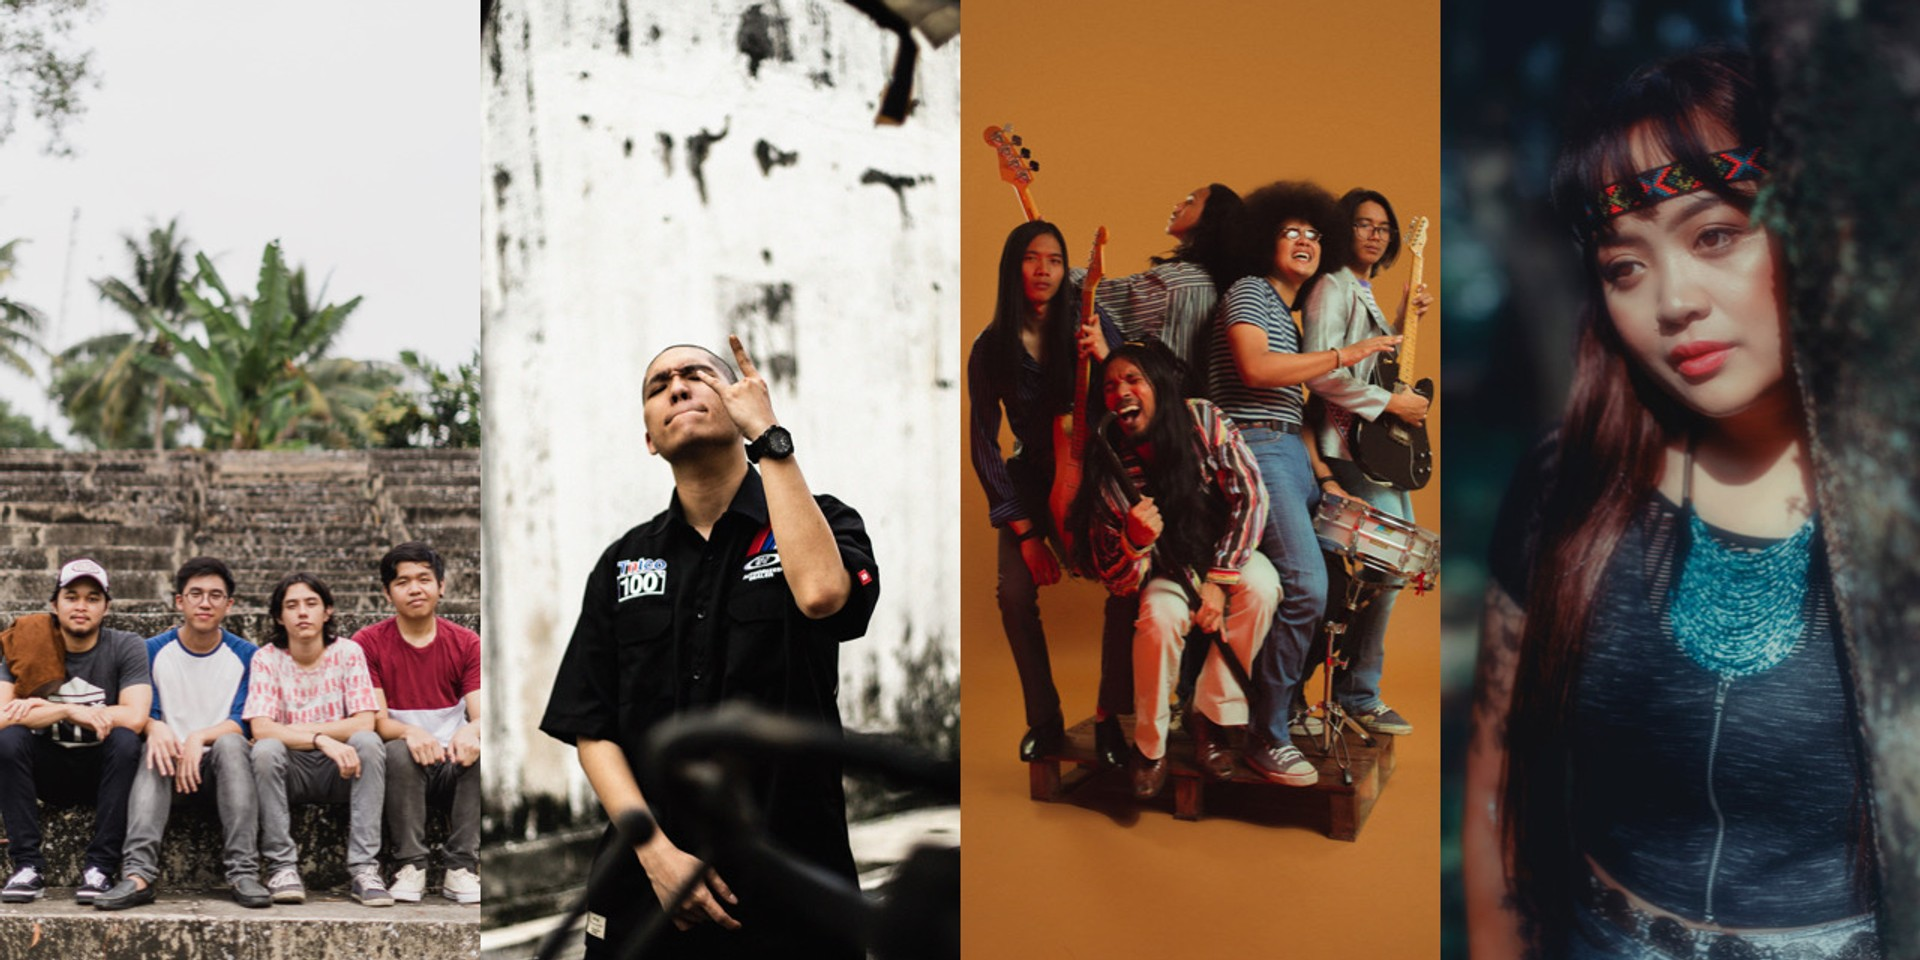 Levi's Music Project expands to Malaysia, announces 4 finalists - Alien Lipstick Fire, DATO' MAW, Margasatwa, and Mayabayu